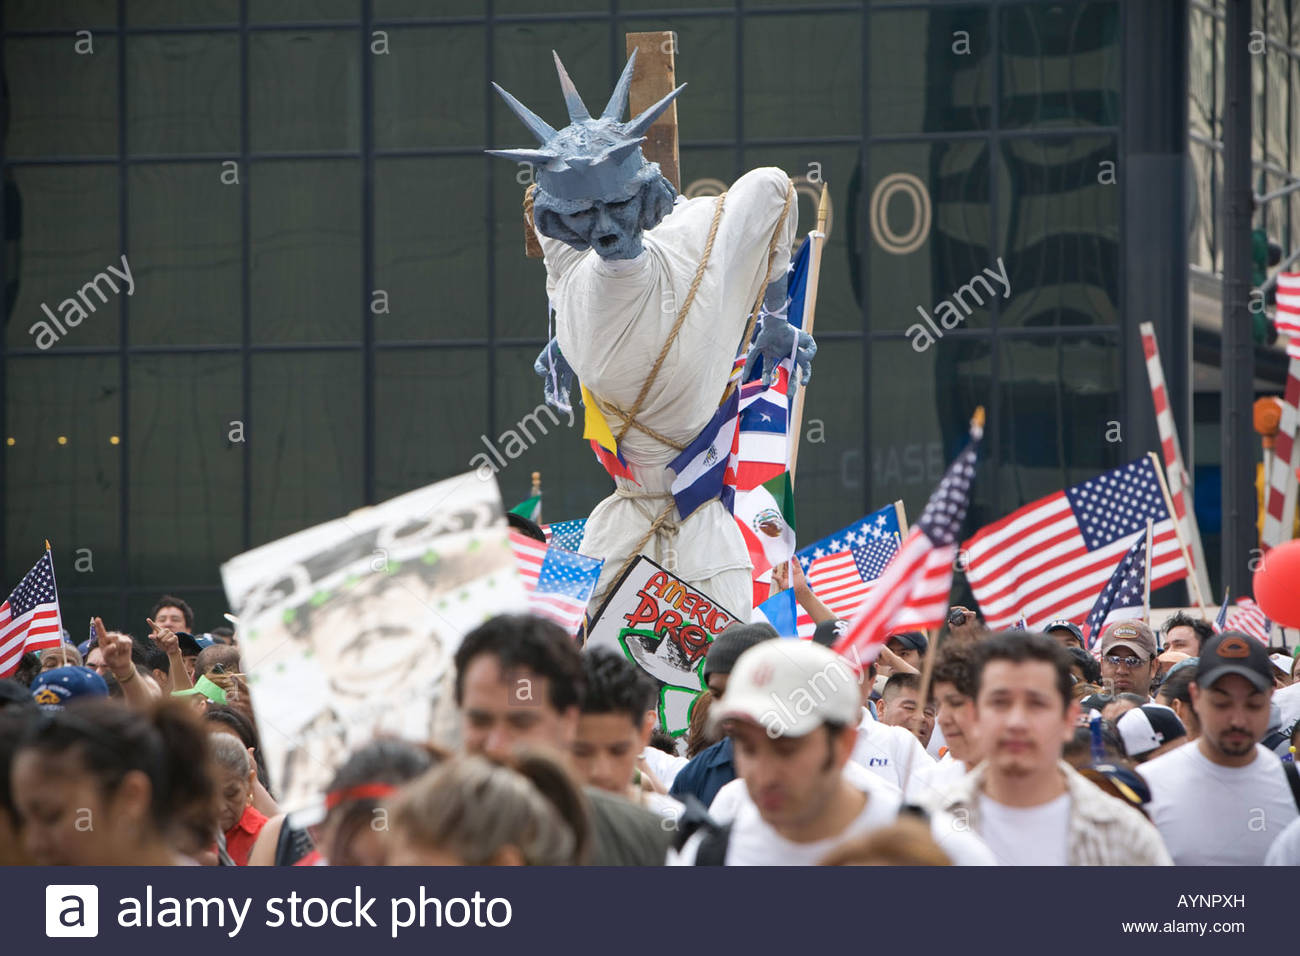 March for immigration reform Chicago - Stock Image